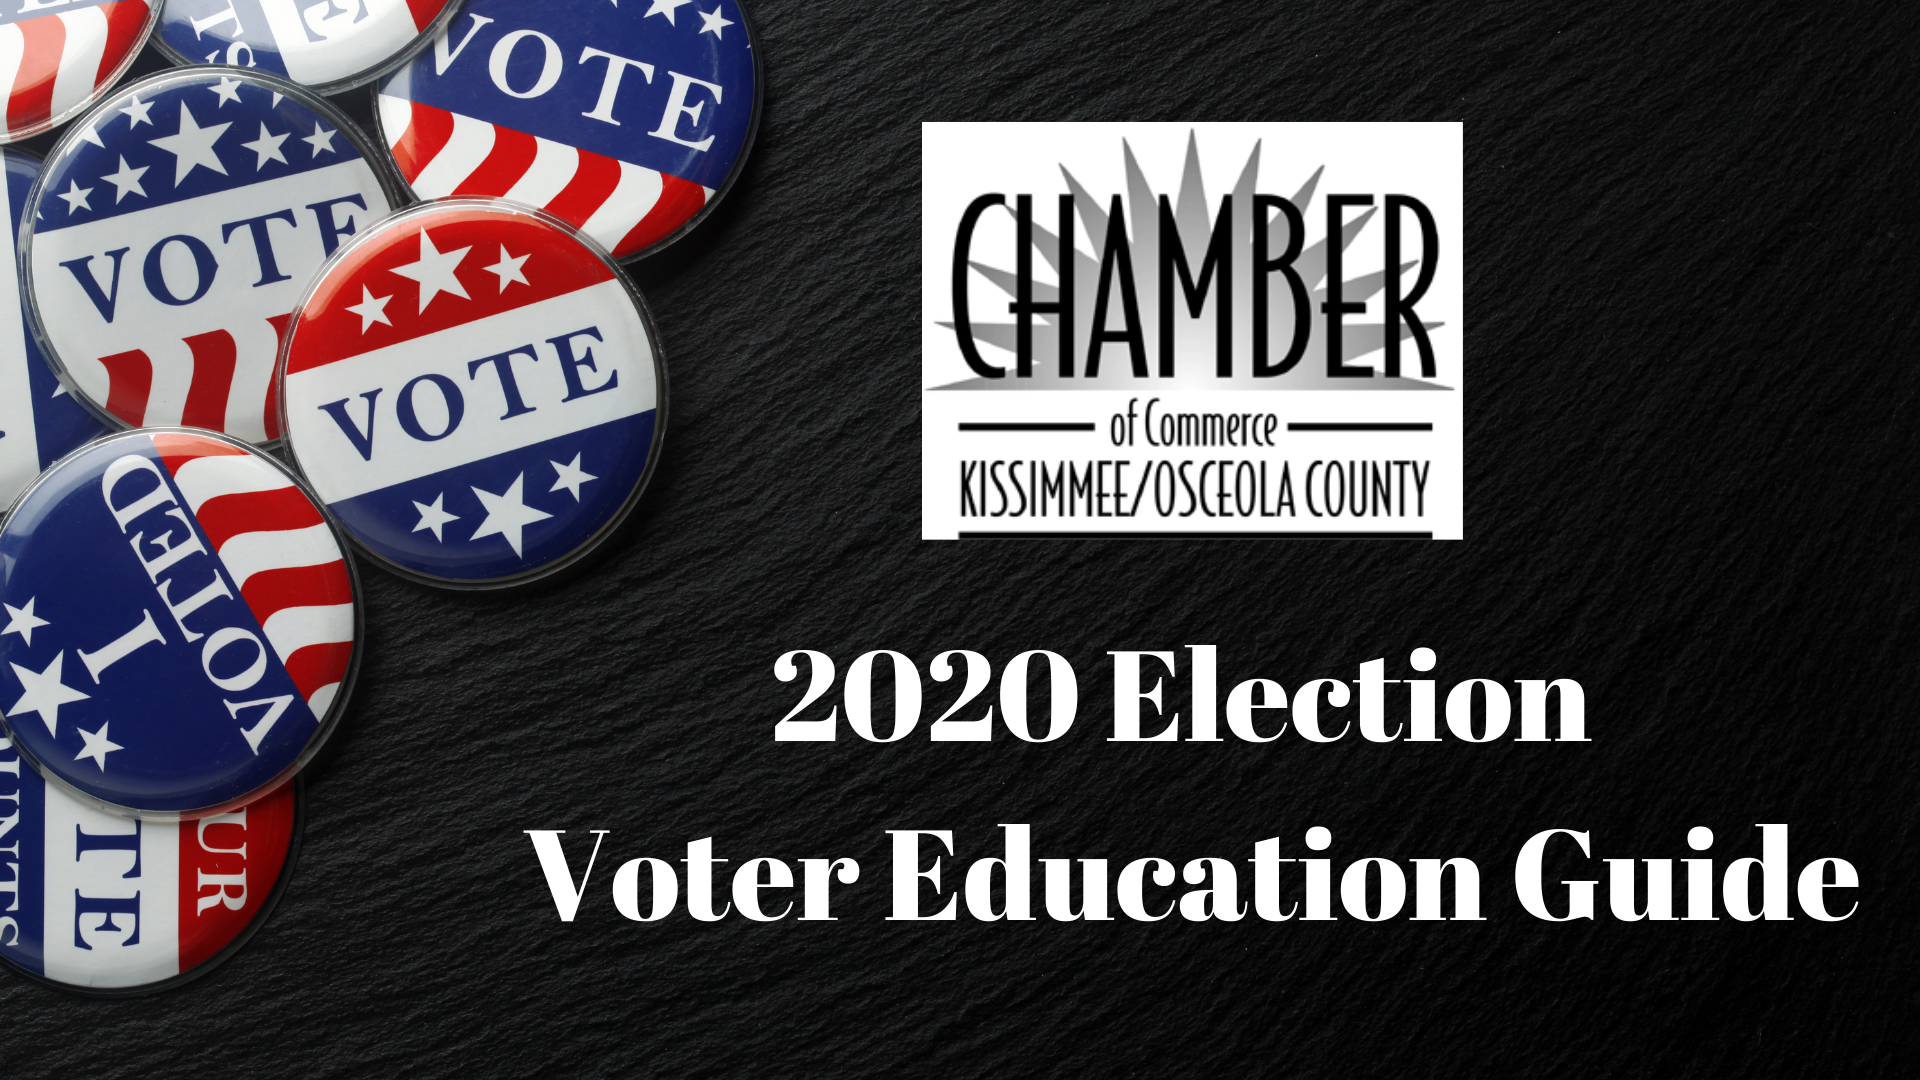 2020 Election Voter Education Guide